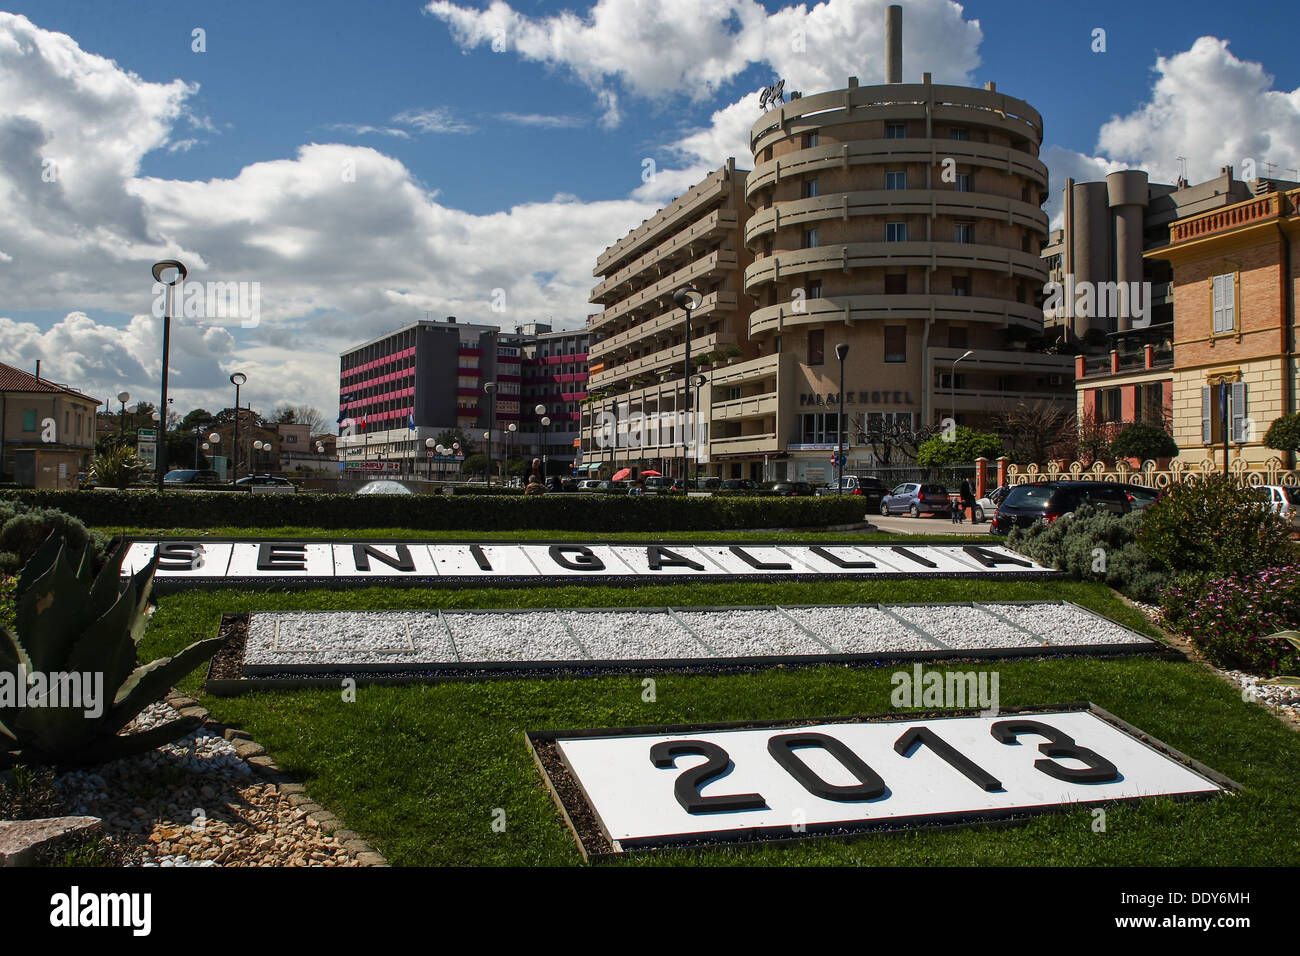 Senigallia (IT) -  Coloured Spring in the City centre with Cloudy Blue sky background and text 'Senigallia 2013'. - Stock Image